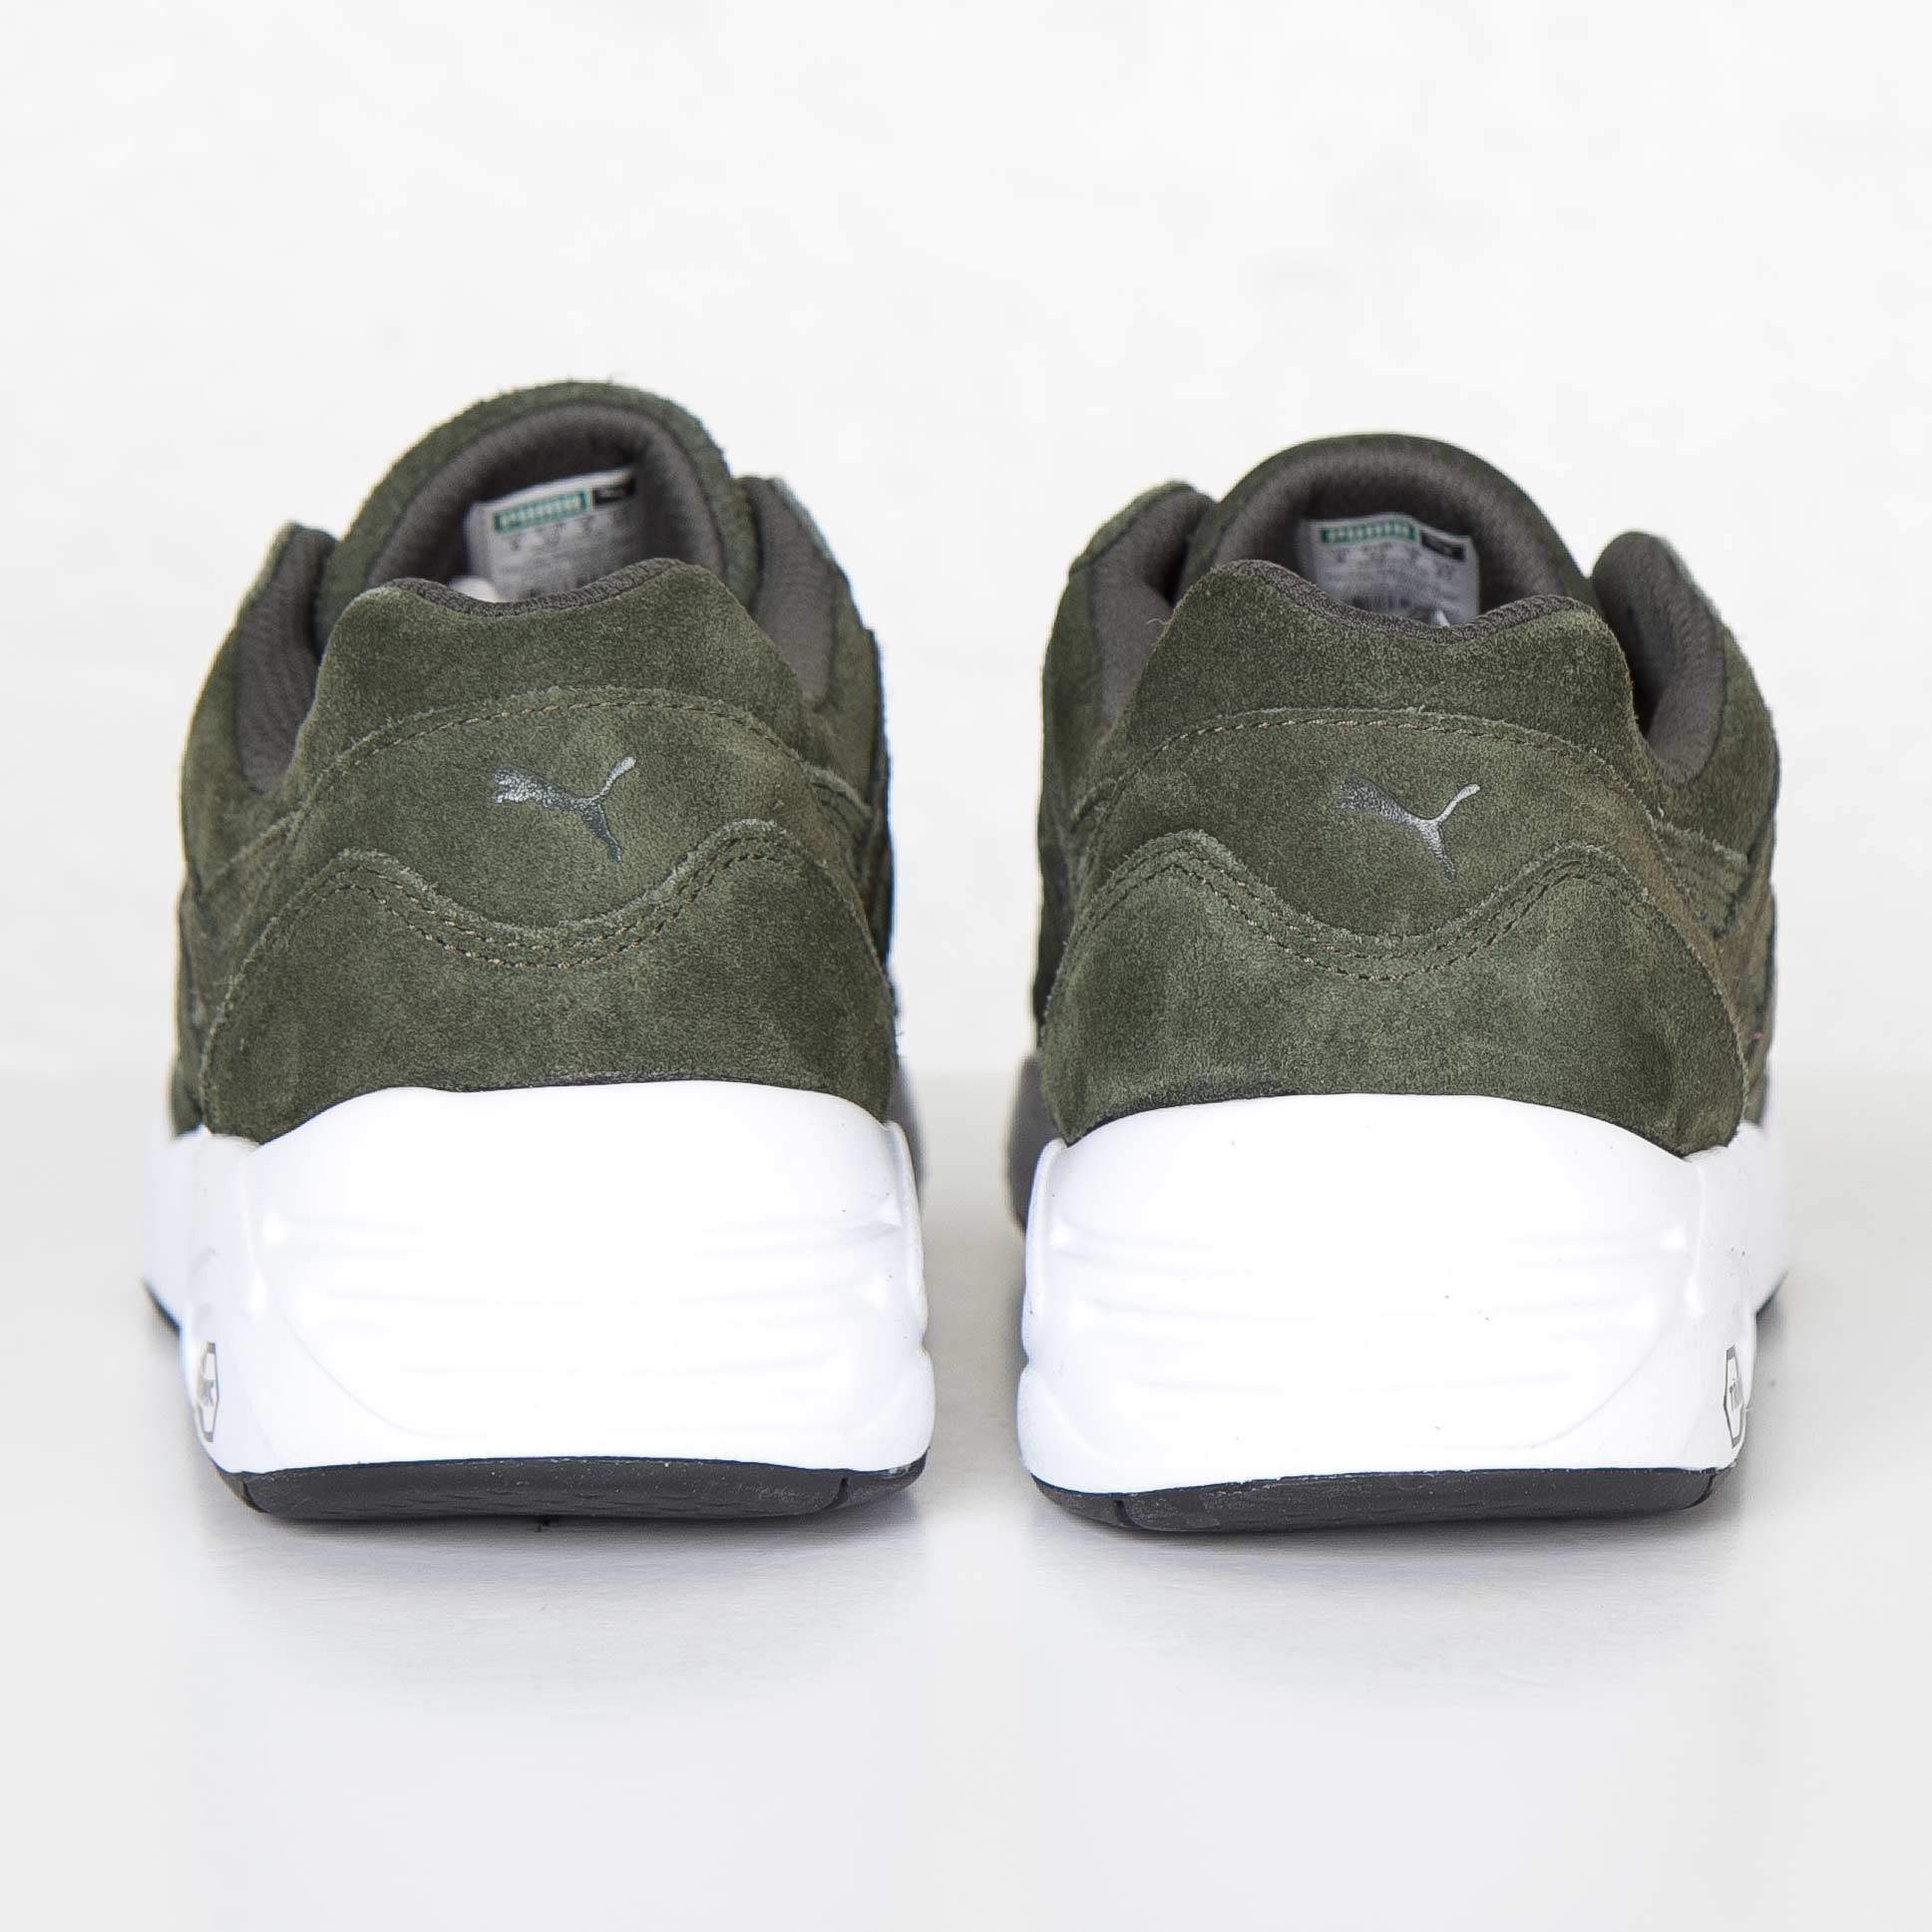 outlet store e6d34 915f3 Puma R698 Allover Suede - 359392-04 - Sneakersnstuff ...